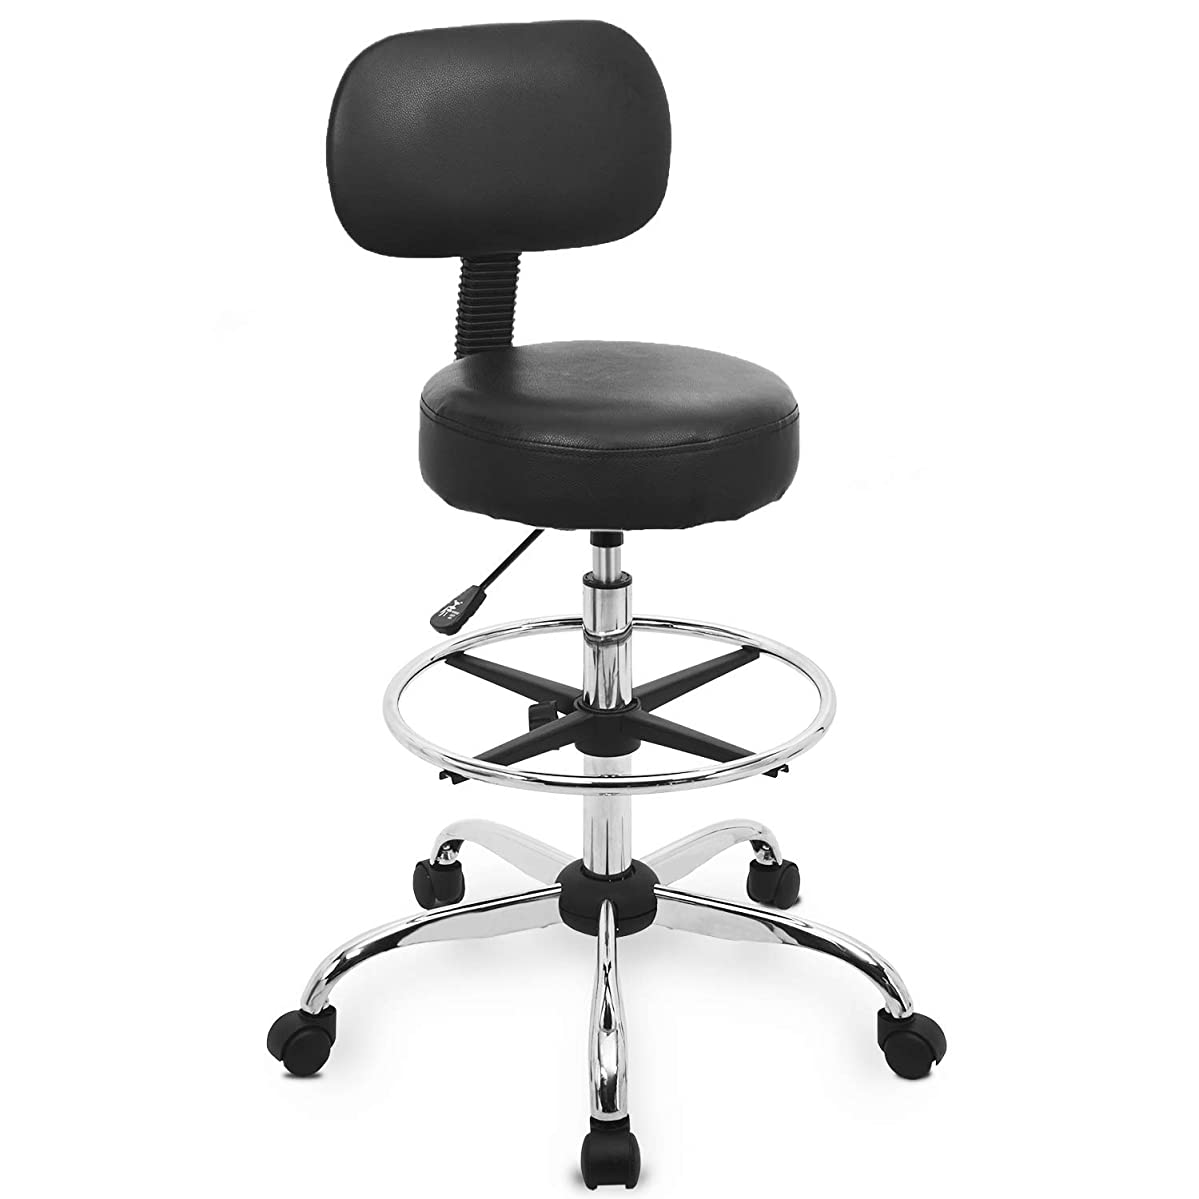 Urest Drafting Stool High Up Desk Chair Tall Rolling Bar Stool with Back Wheels and Foot Rest for Shop Workbench Lab Workshop Task Workpro Veer Esthetician in Black